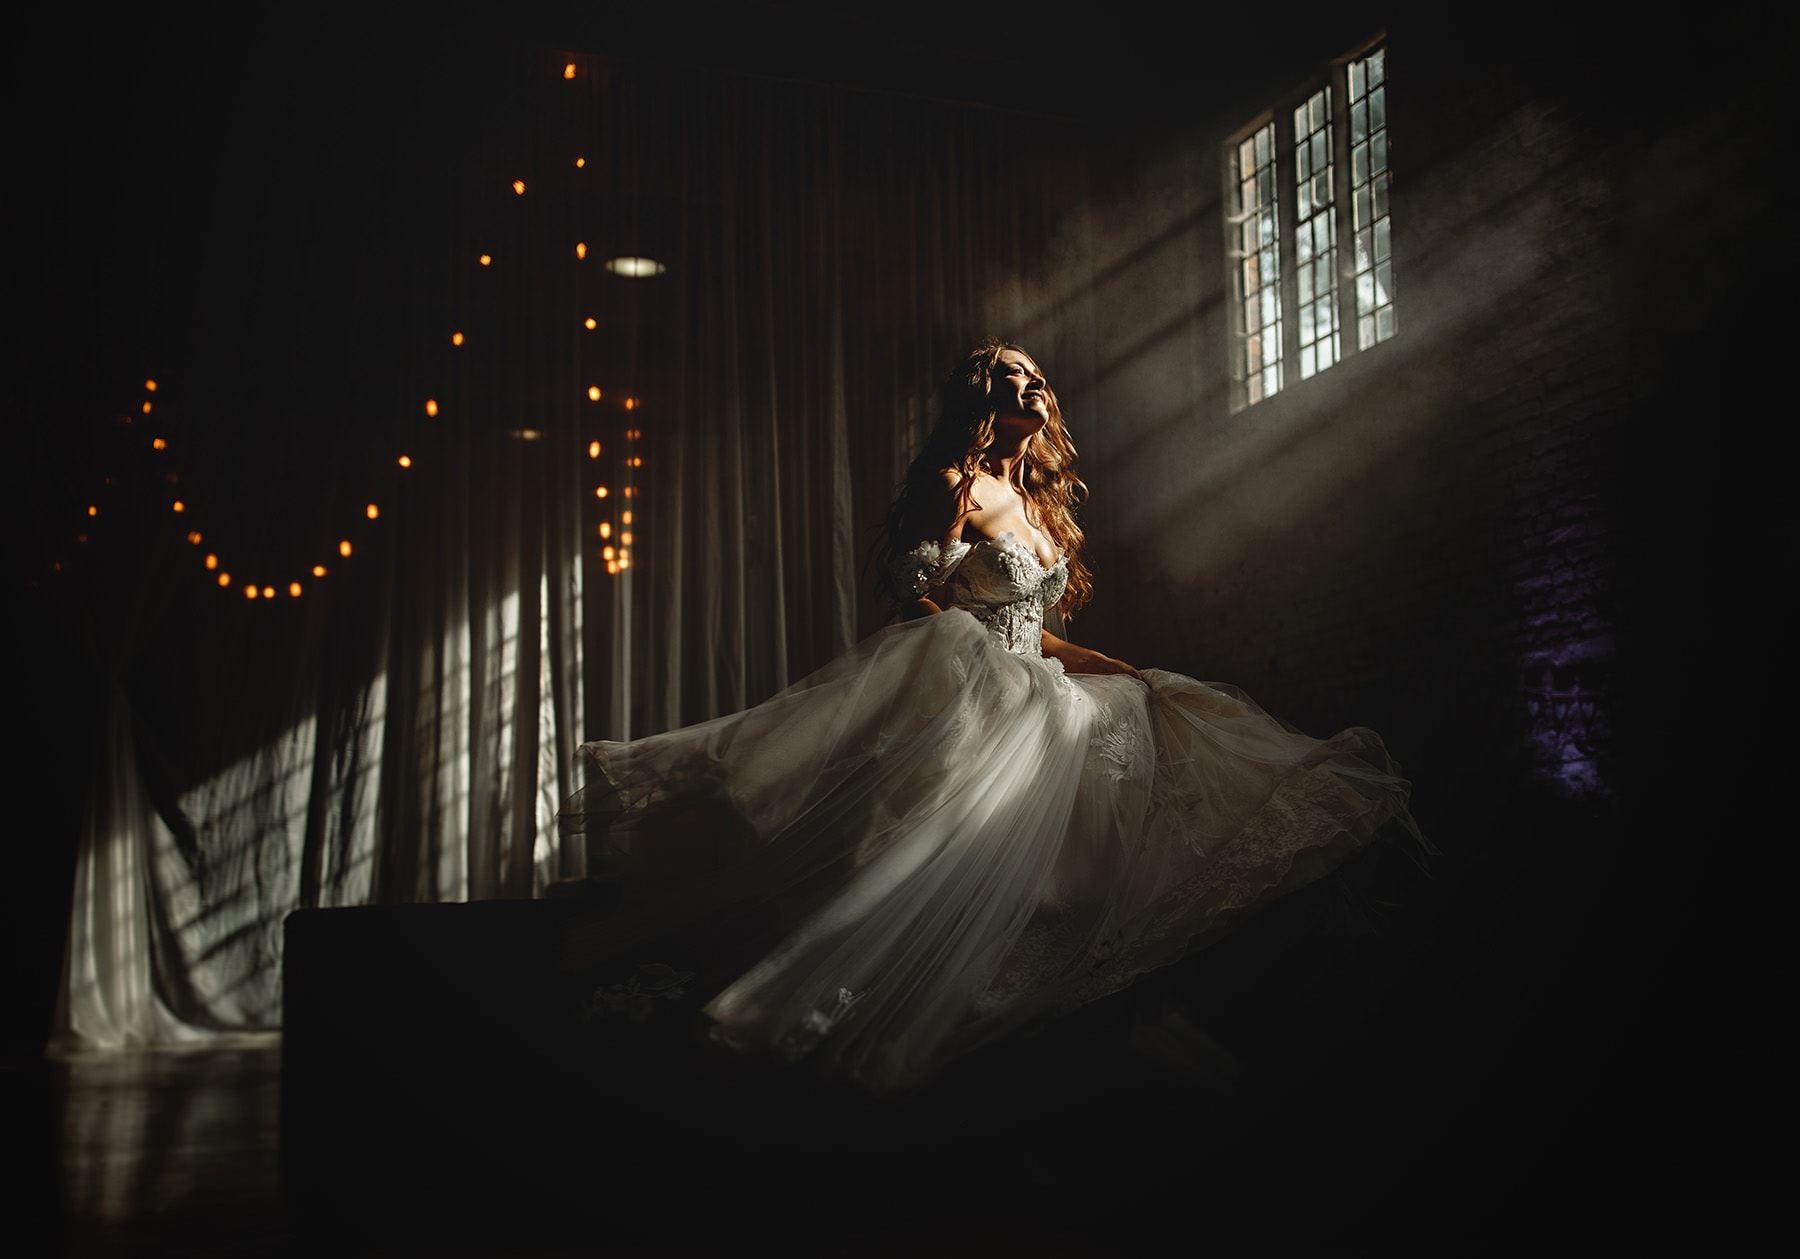 the bride spinning in dark light at Calke Abbey. Another stunning derbyshire wedding venue